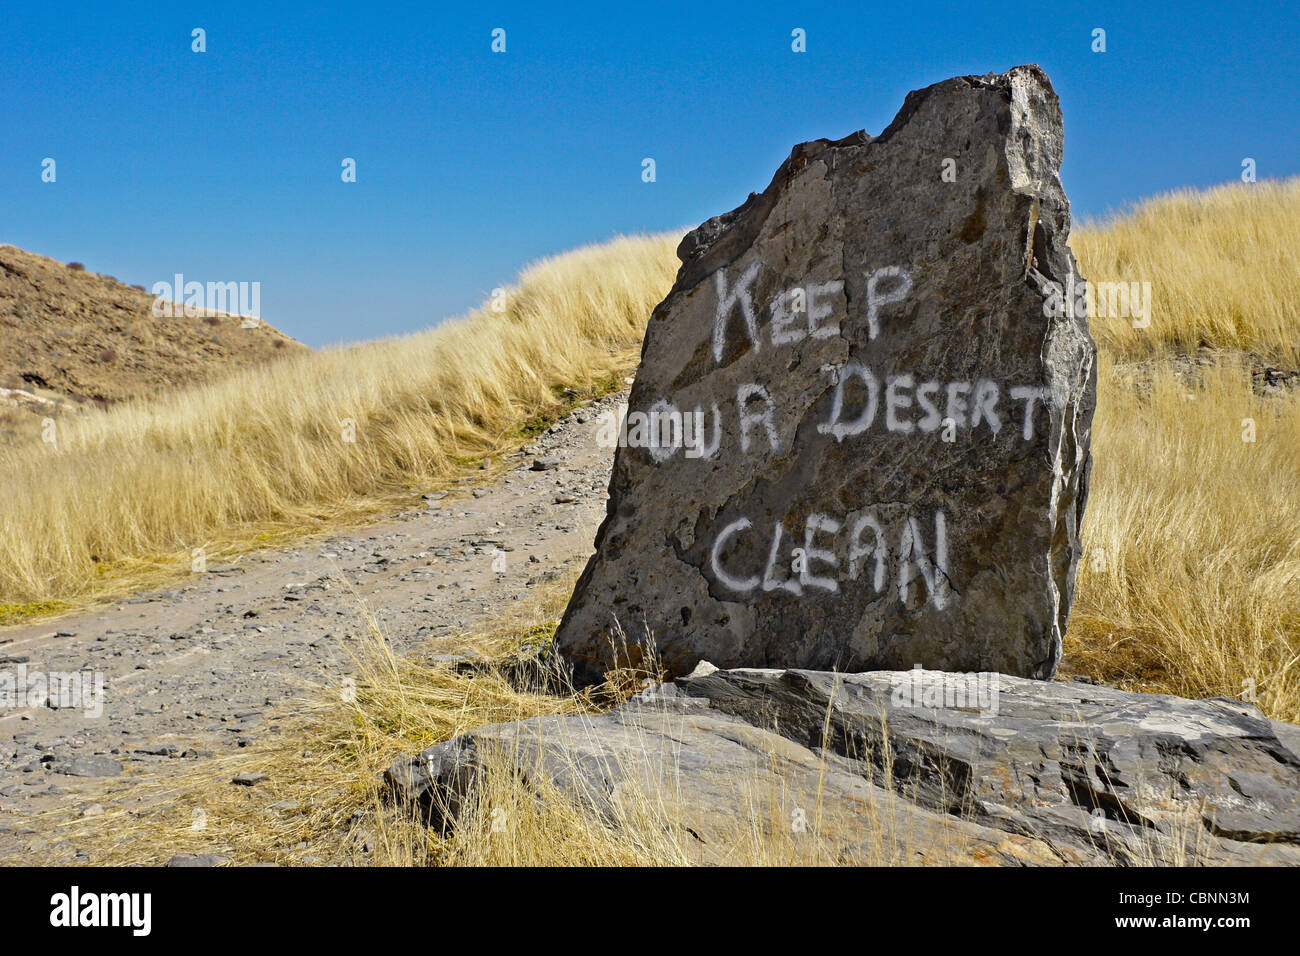 Anti-littering message painted on rock, Namibia - Stock Image